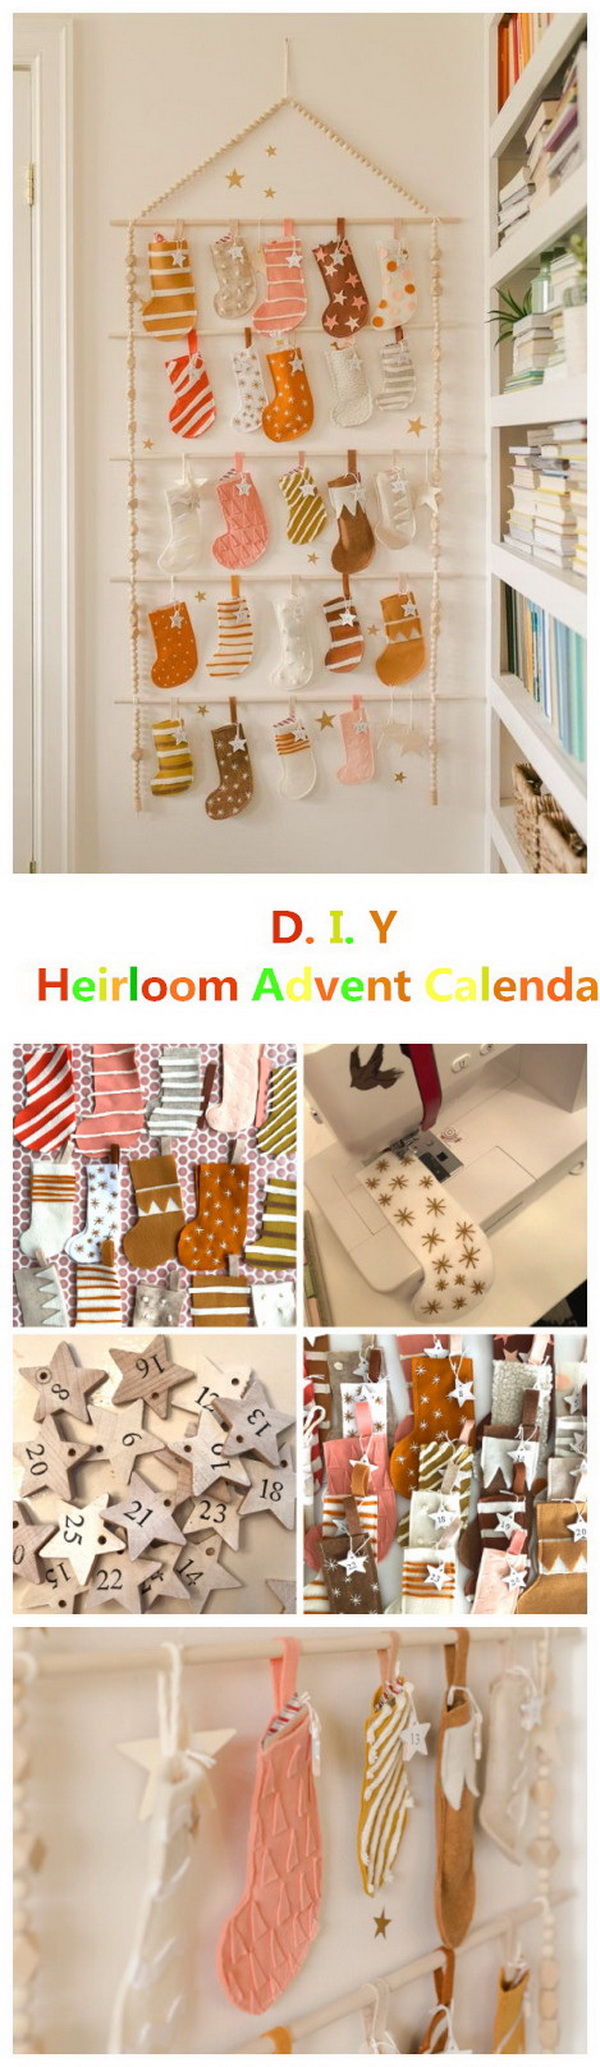 Felt Stockings Heirloom Advent Calendar DIY.